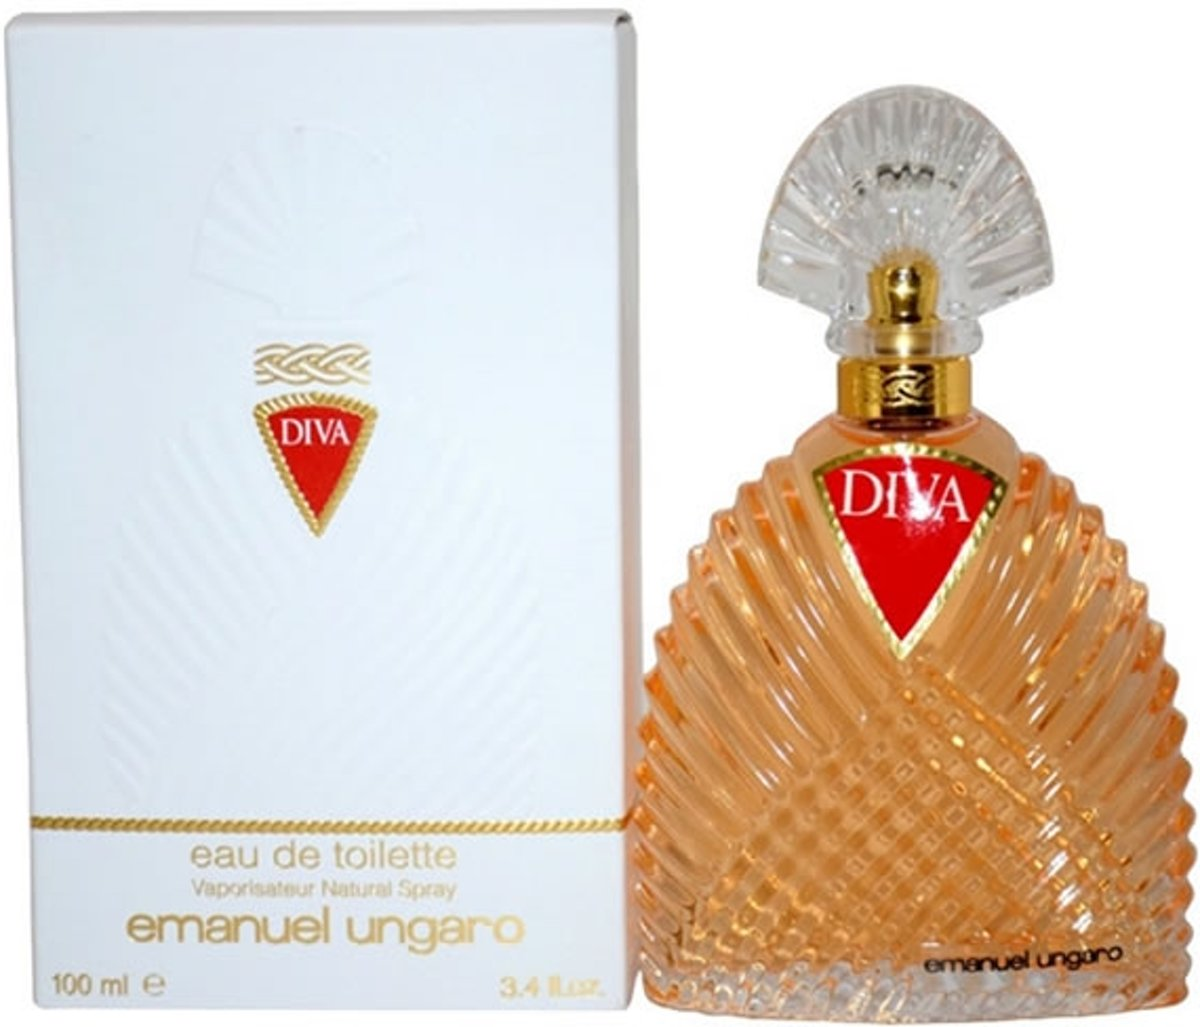 MULTI BUNDEL 3 stuks Emanuel Ungaro Diva Eau De Toilette Spray 100ml